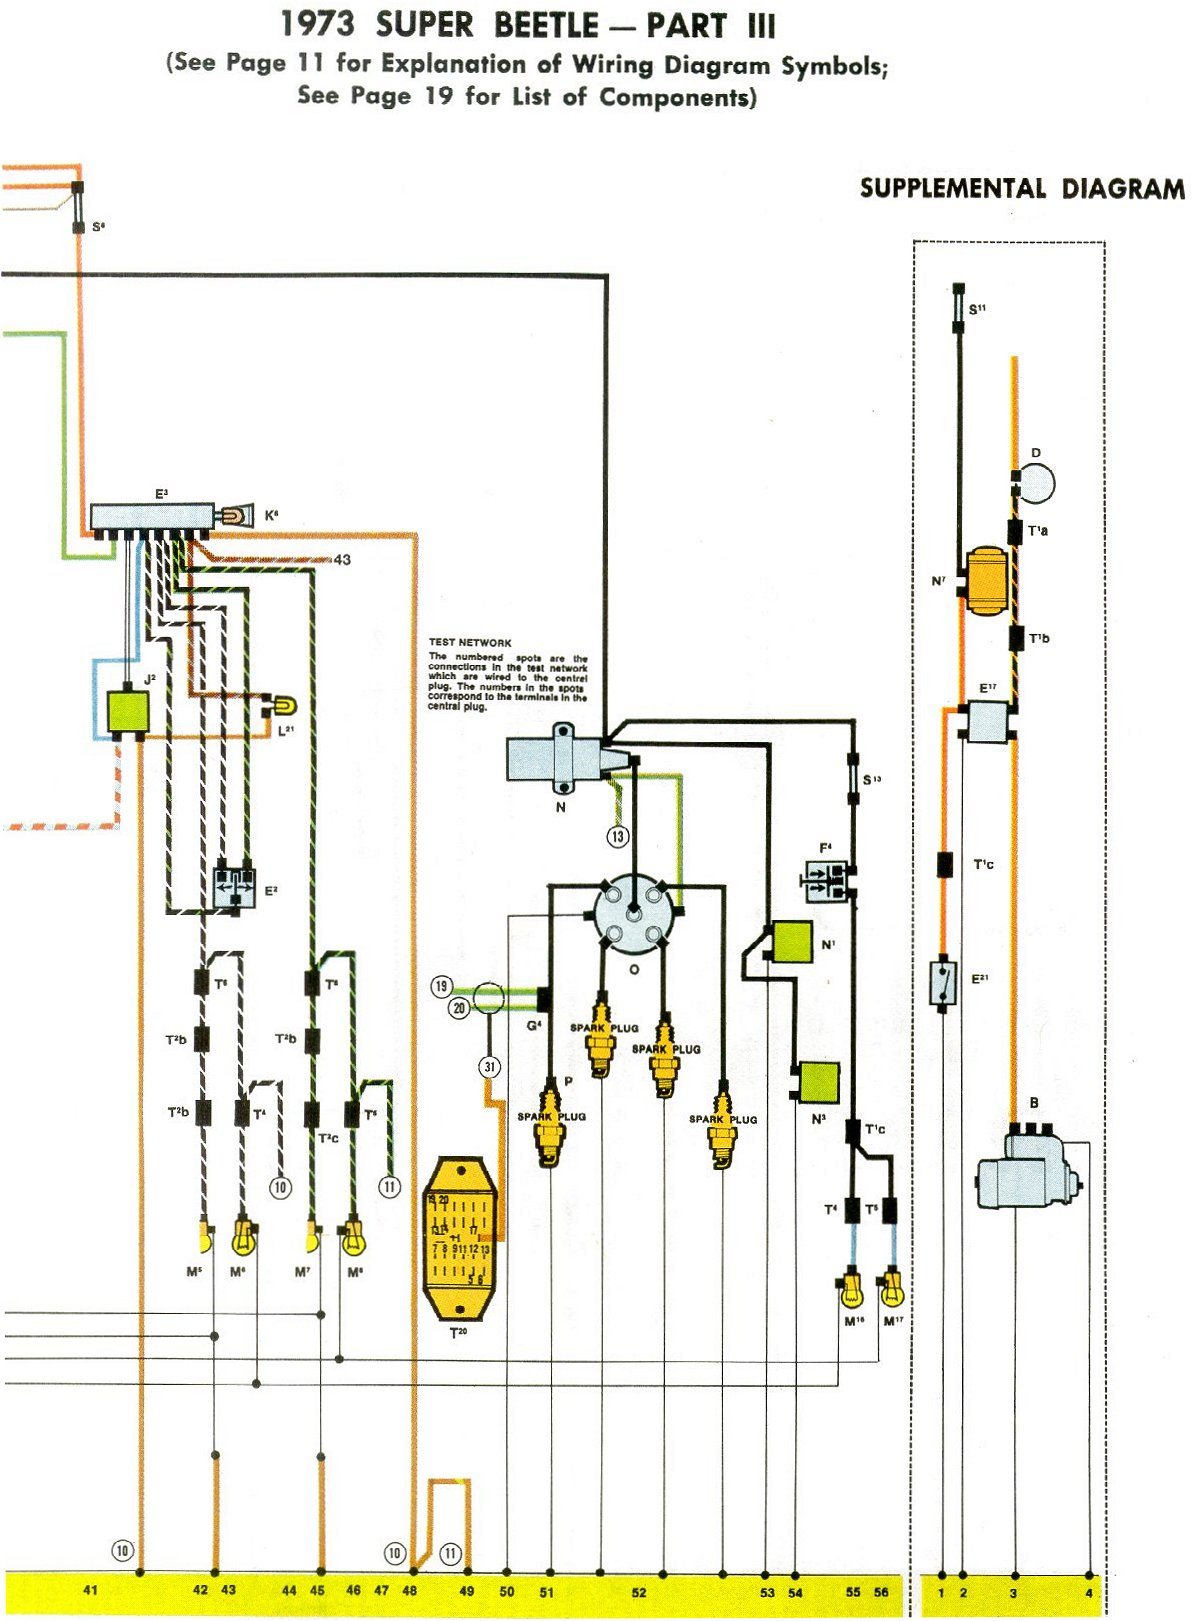 bug_73super_c 1973 super beetle wiring diagram thegoldenbug com 1973 vw wiring diagram at nearapp.co